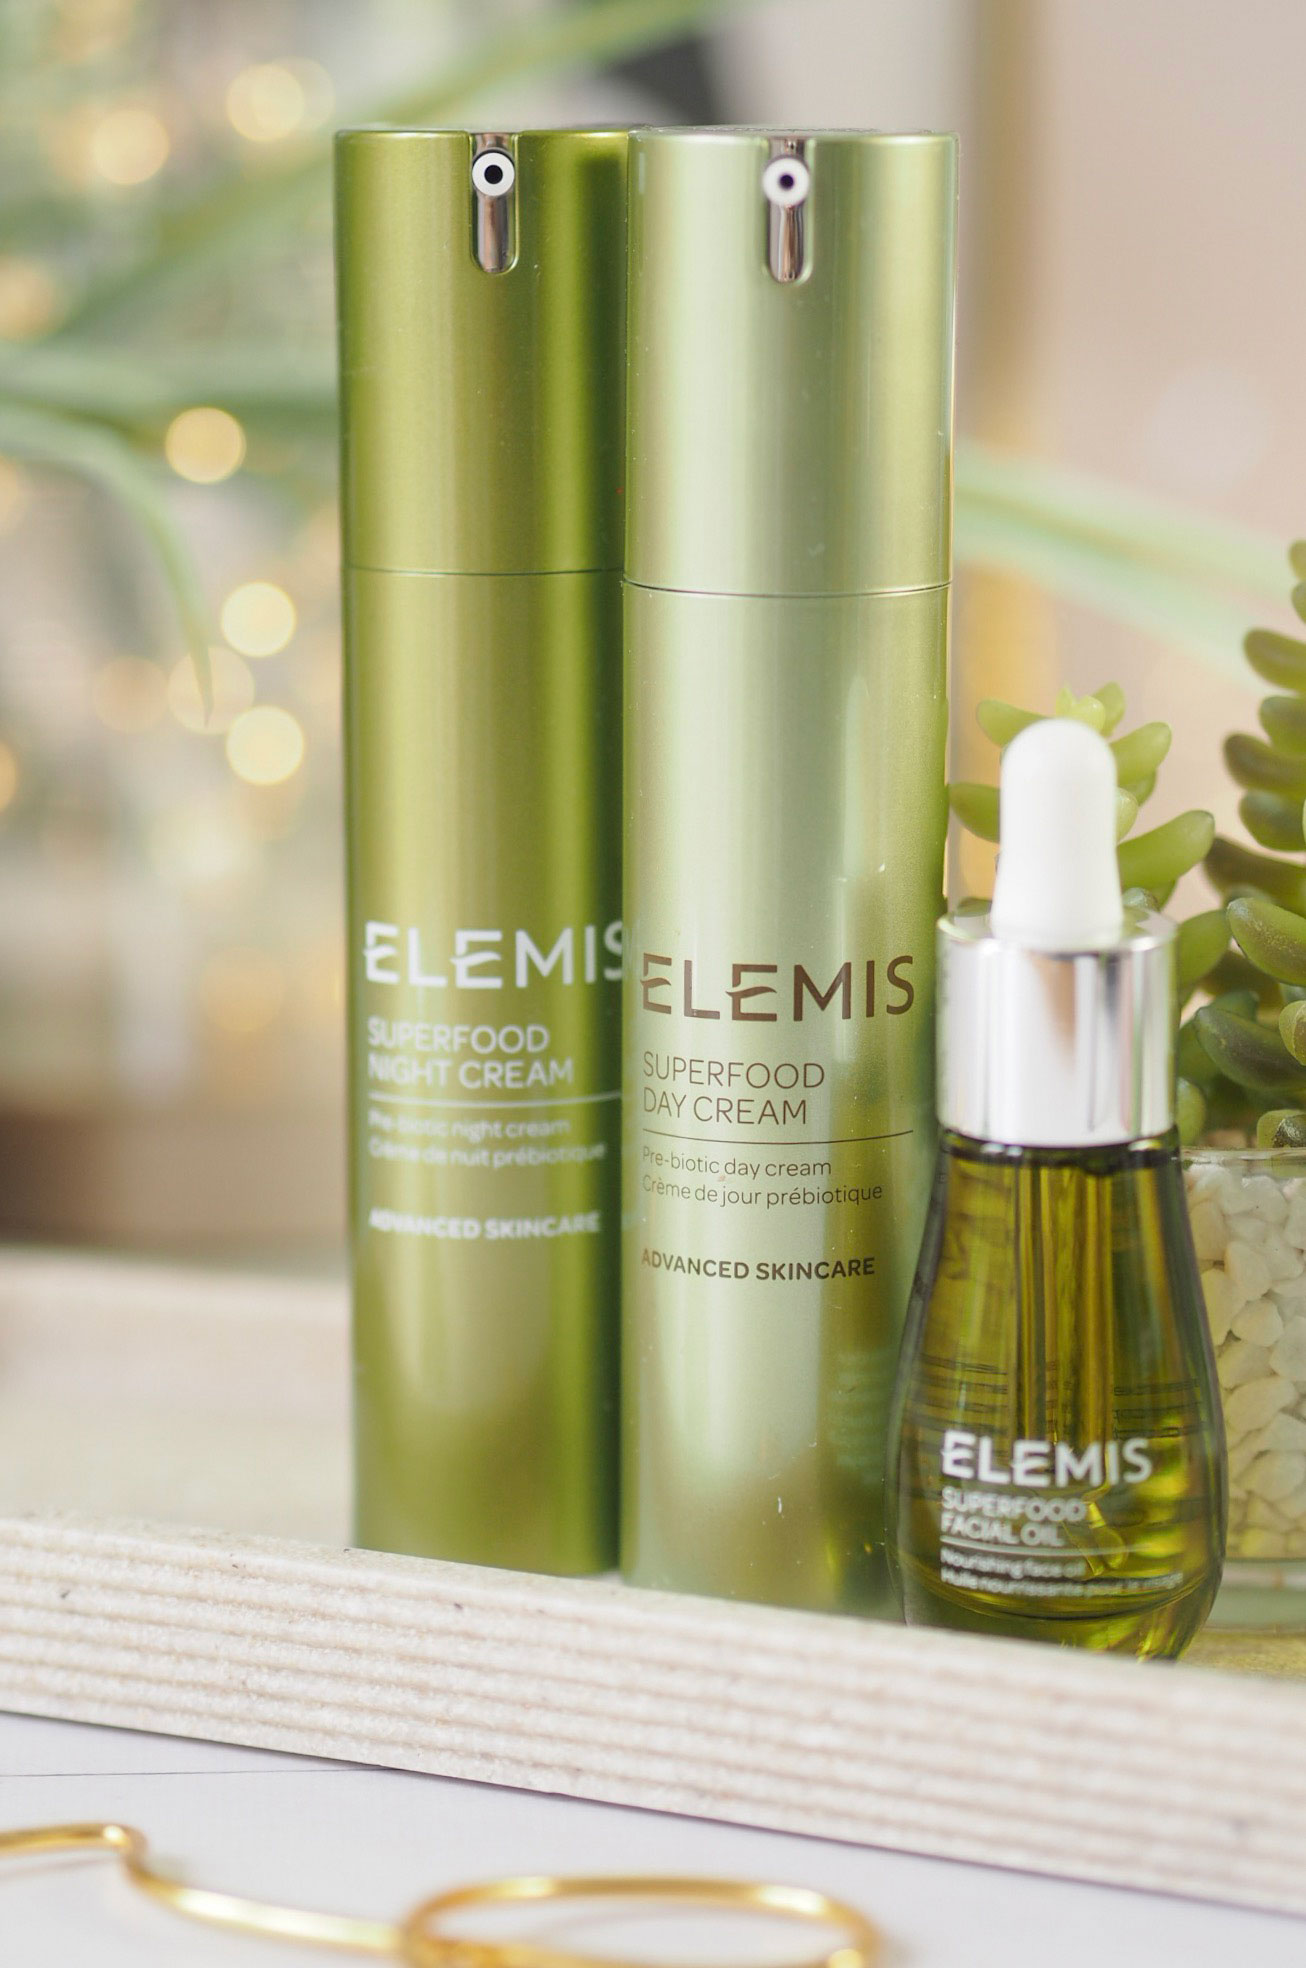 Elemis Superfood Day Cream Review